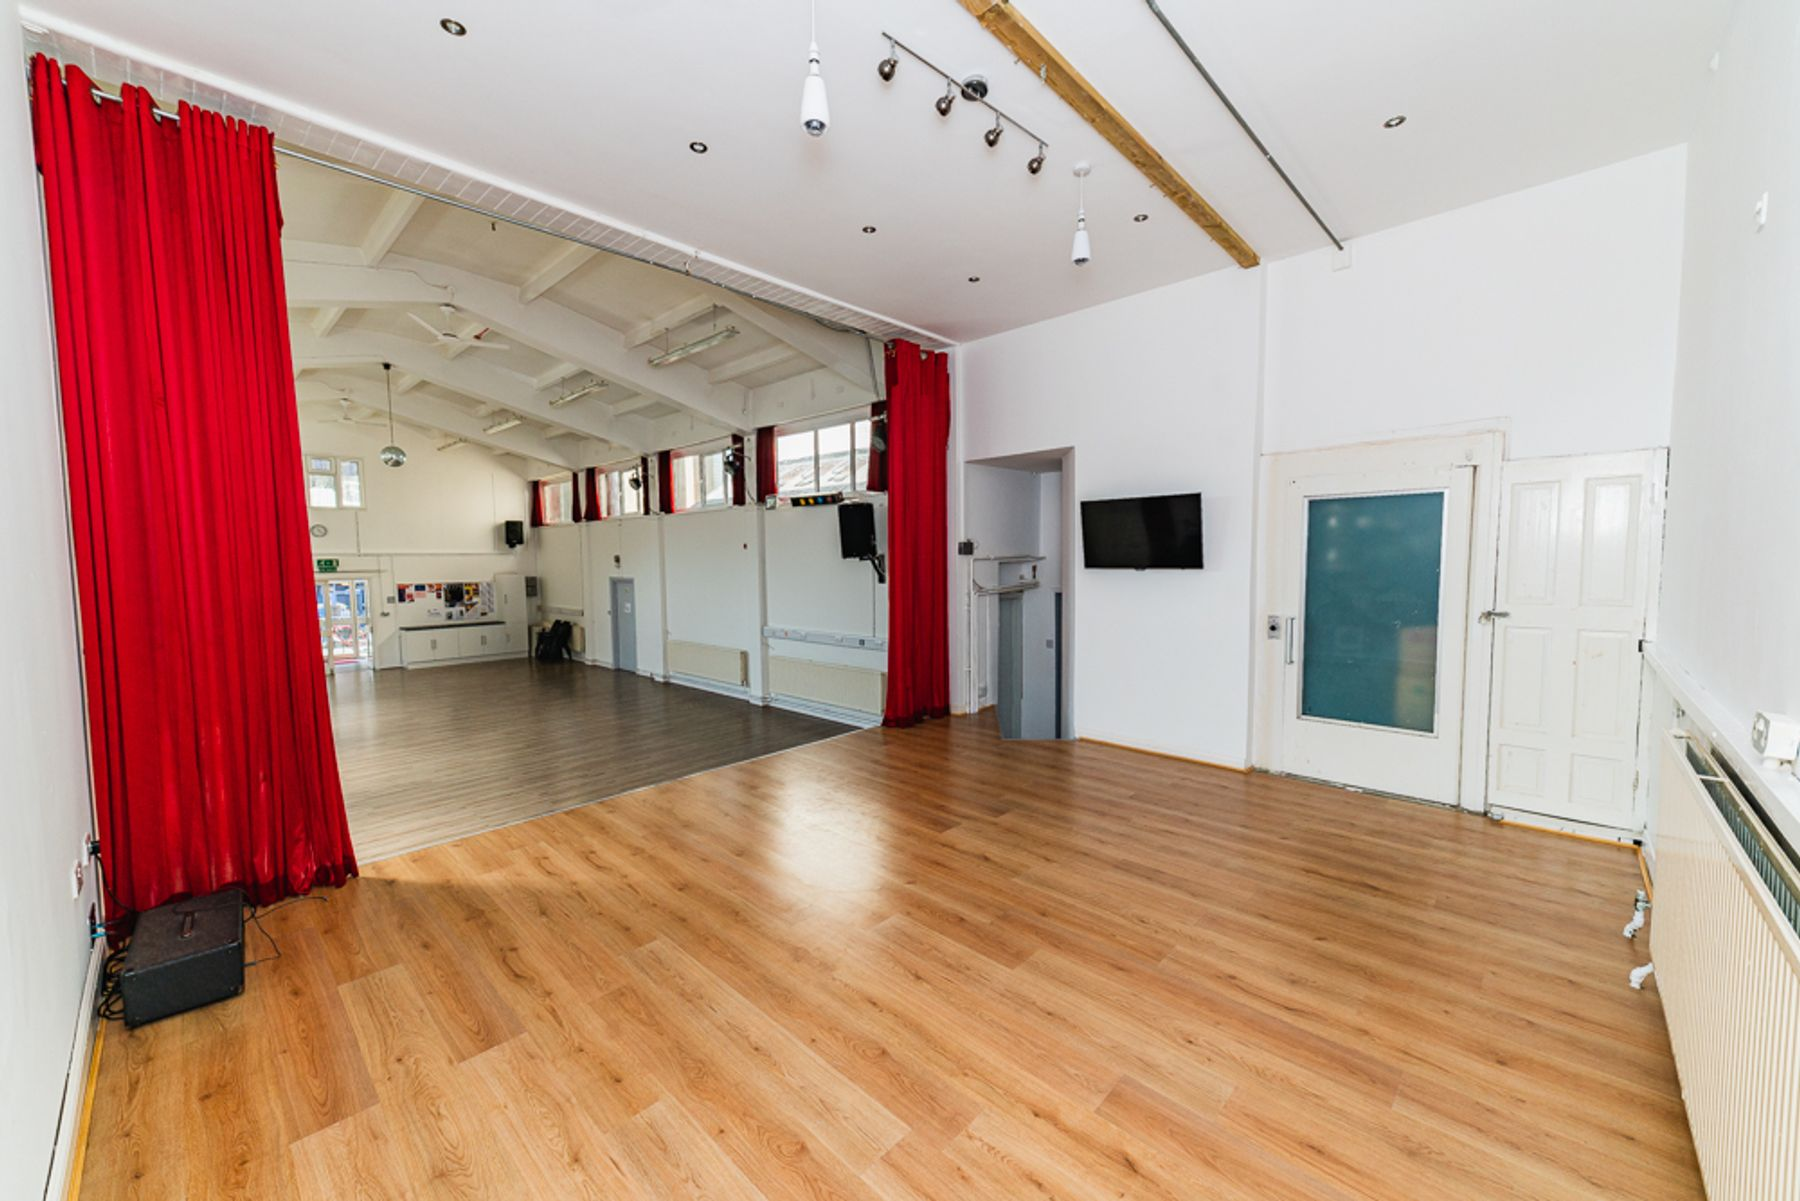 Hall and stage with semi-sprung floor & natural light